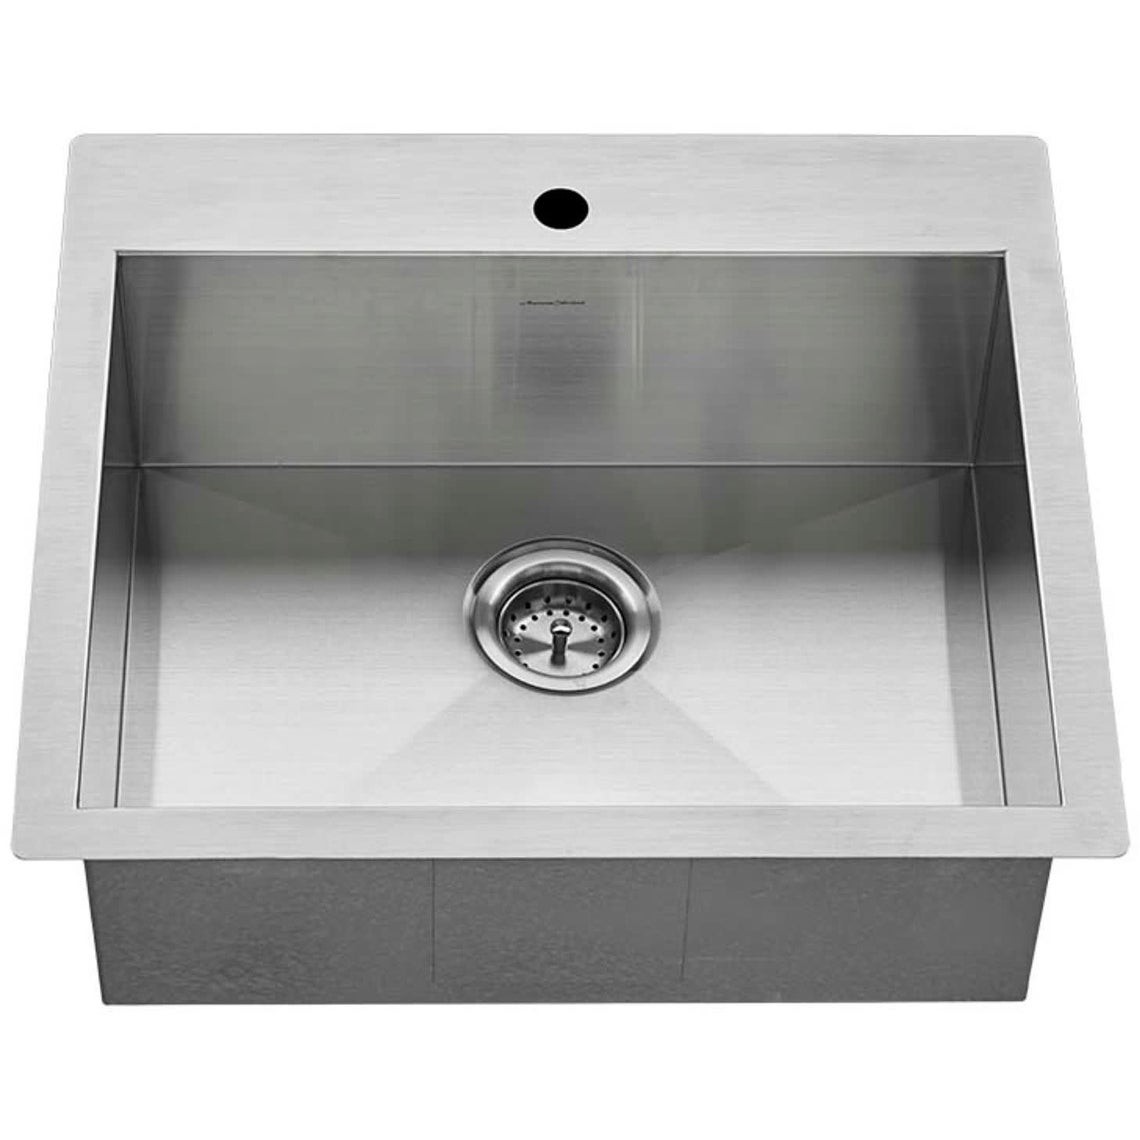 American standard 18sb 9252211 edgewater 25 single basin stainless steel kitchen sink for drop in or undermount installations